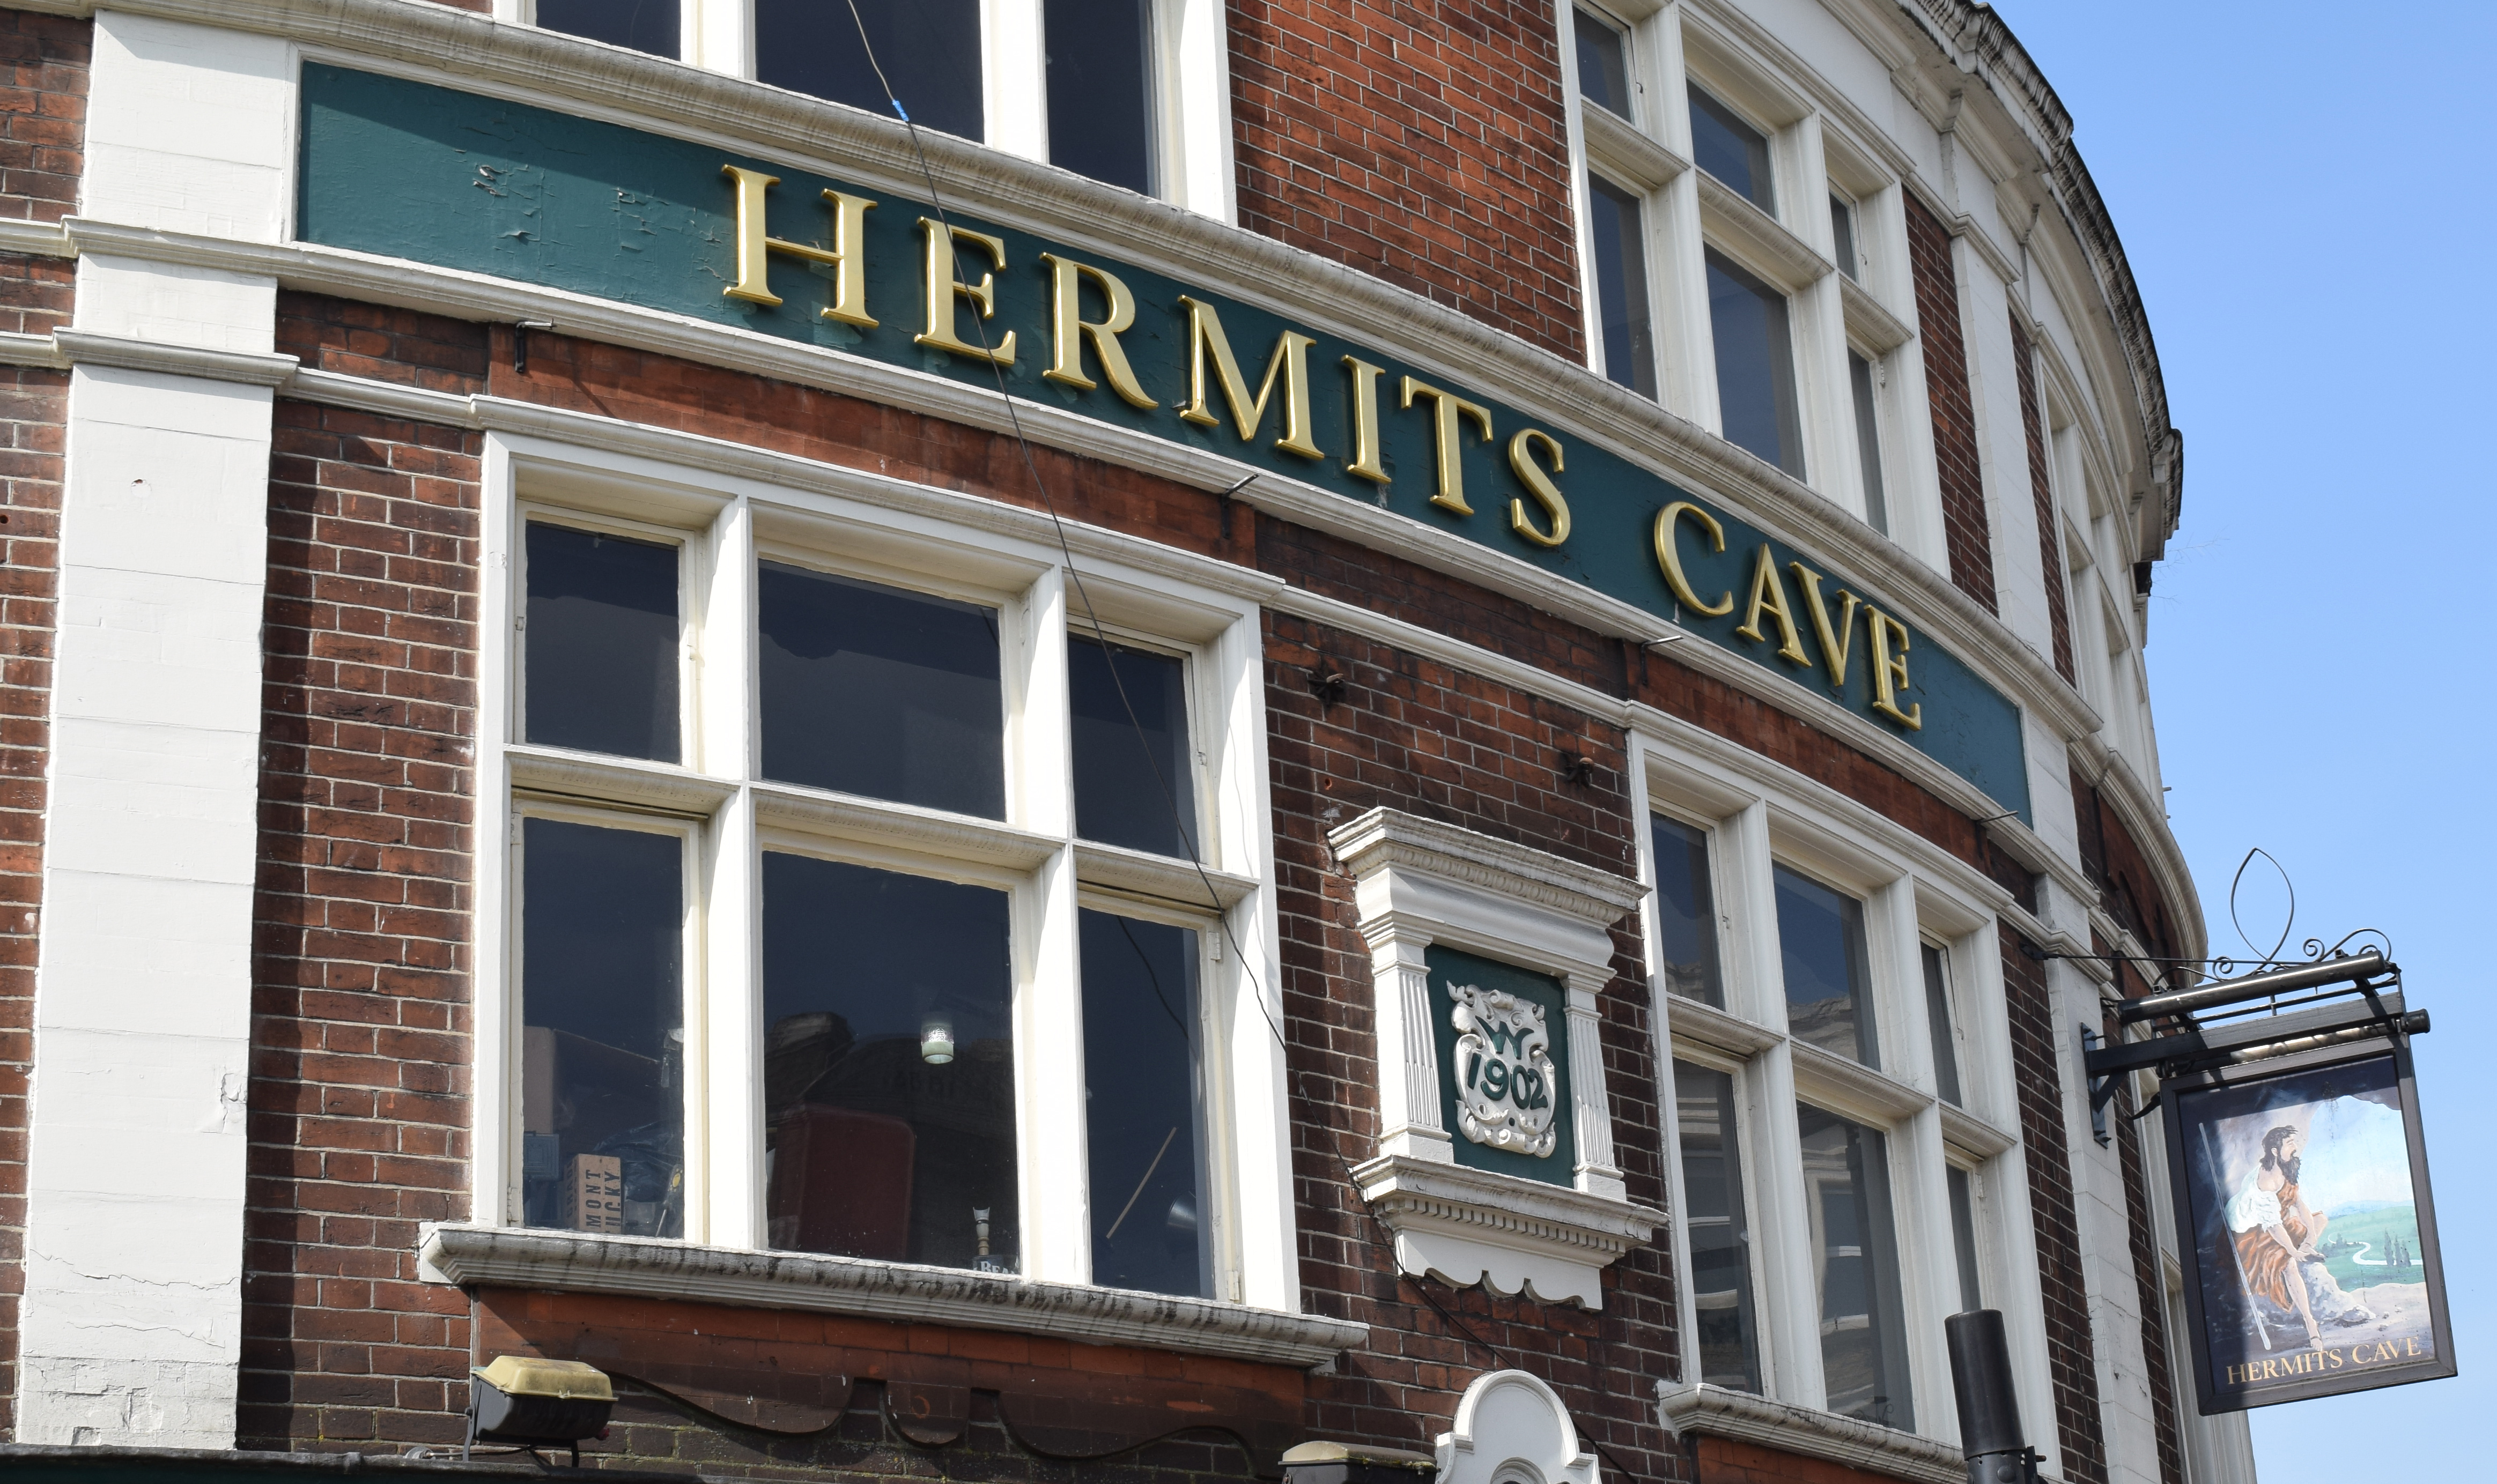 The Hermits Cave in Camberwell